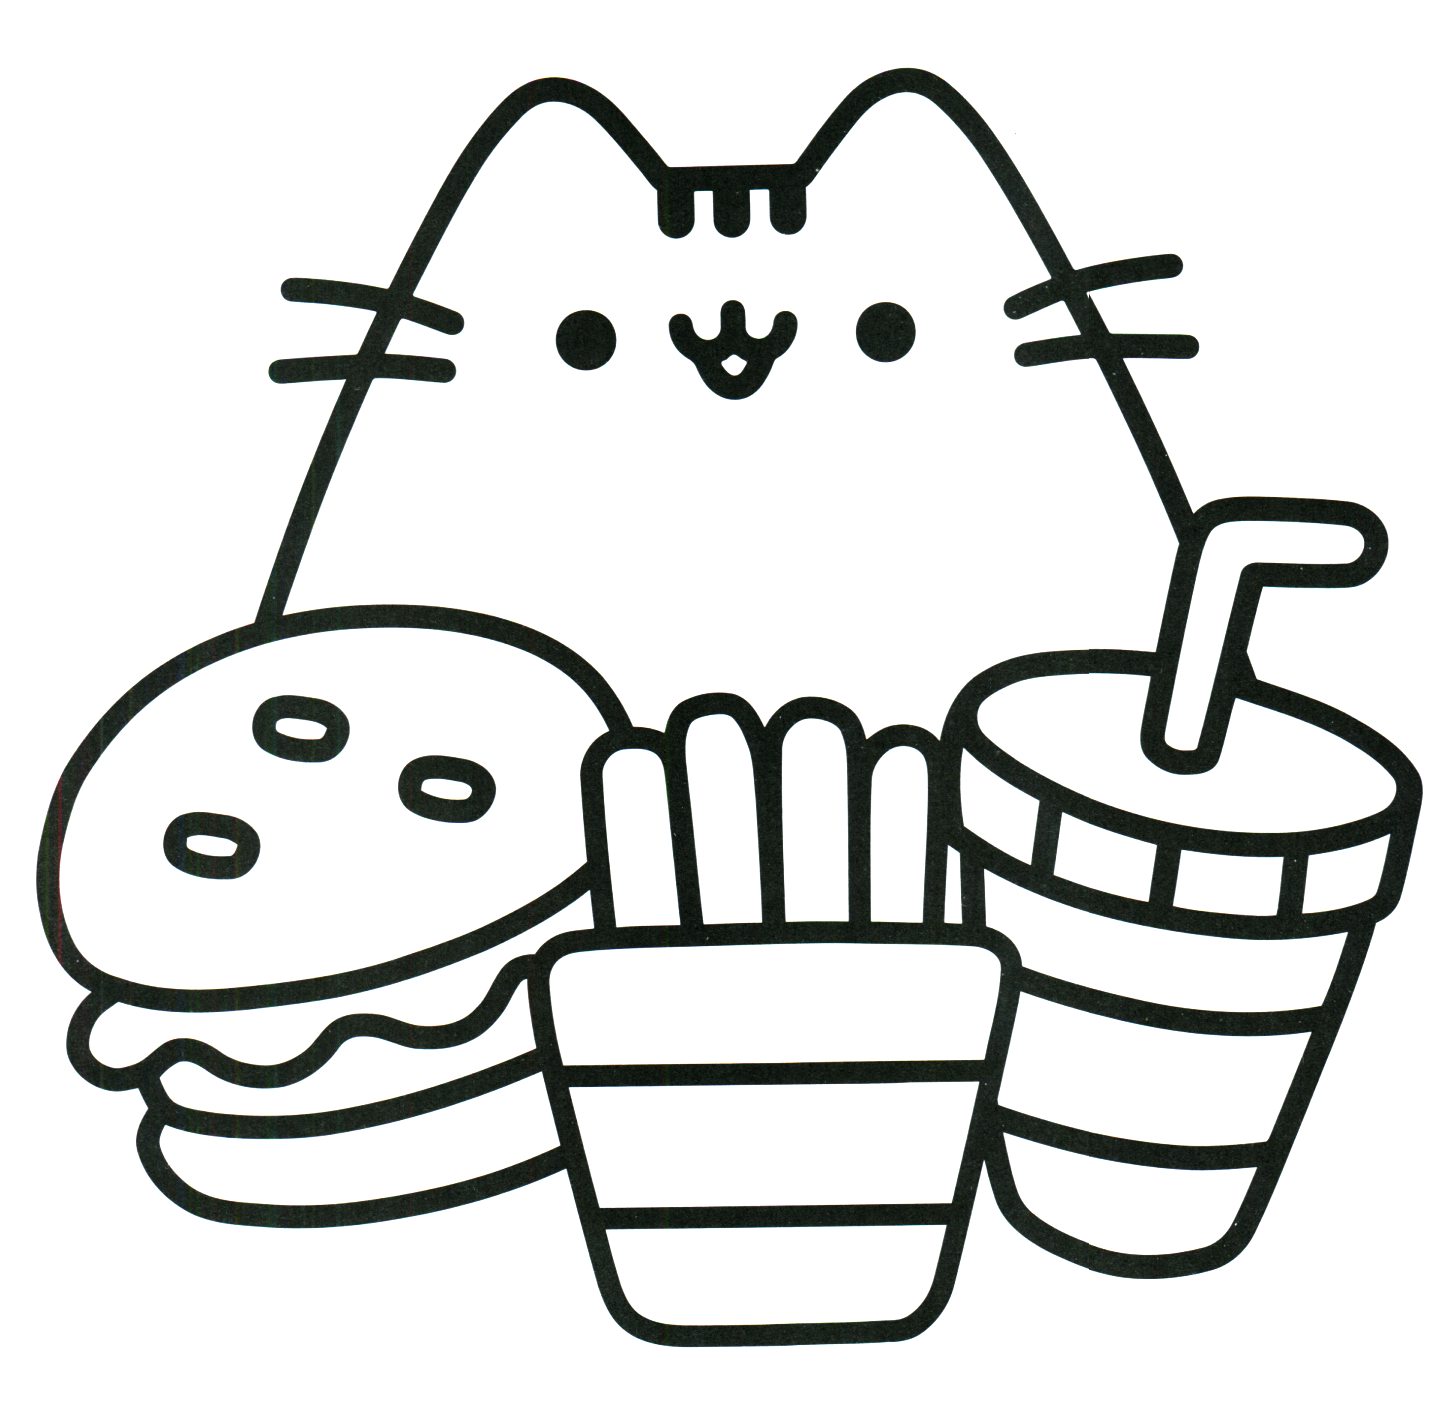 Pusheen Coloring Book Pusheen Pusheen